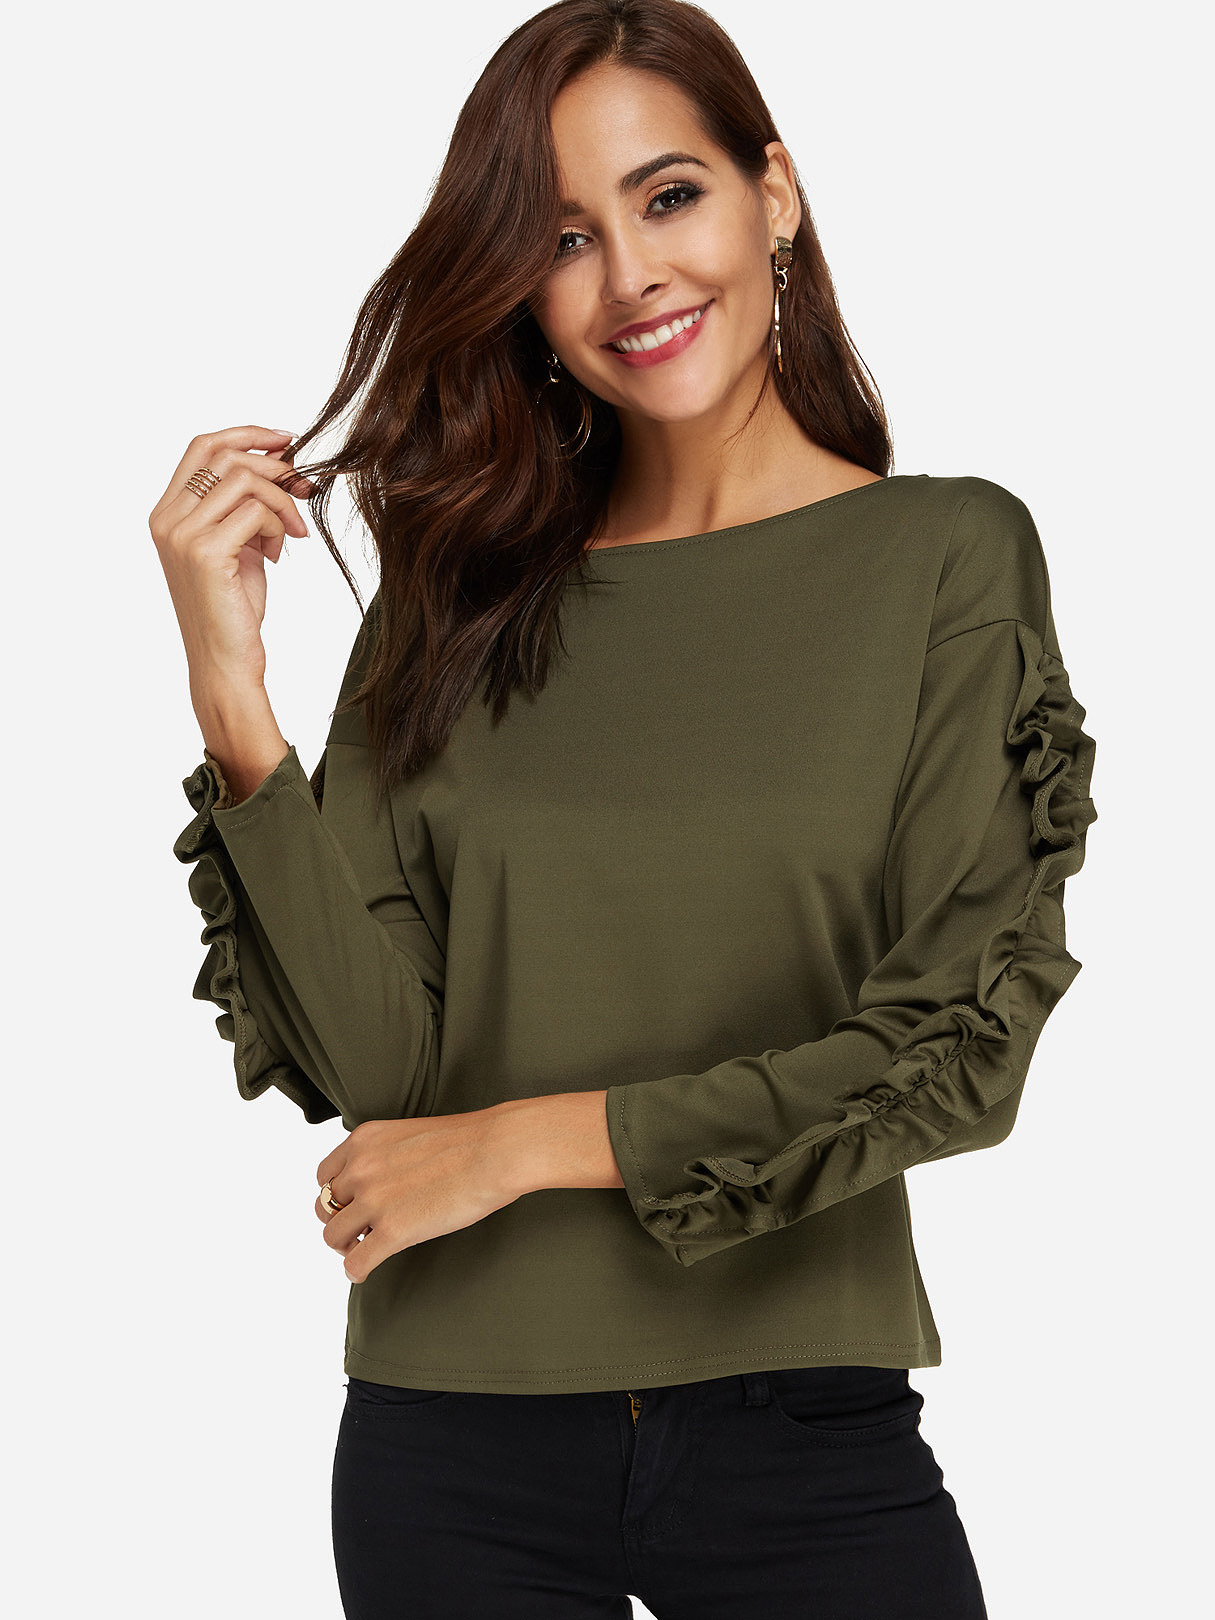 Army Green Flounced Details Round Neck Long Sleeves T-shirts army green lace details cuffs t shirt dresses